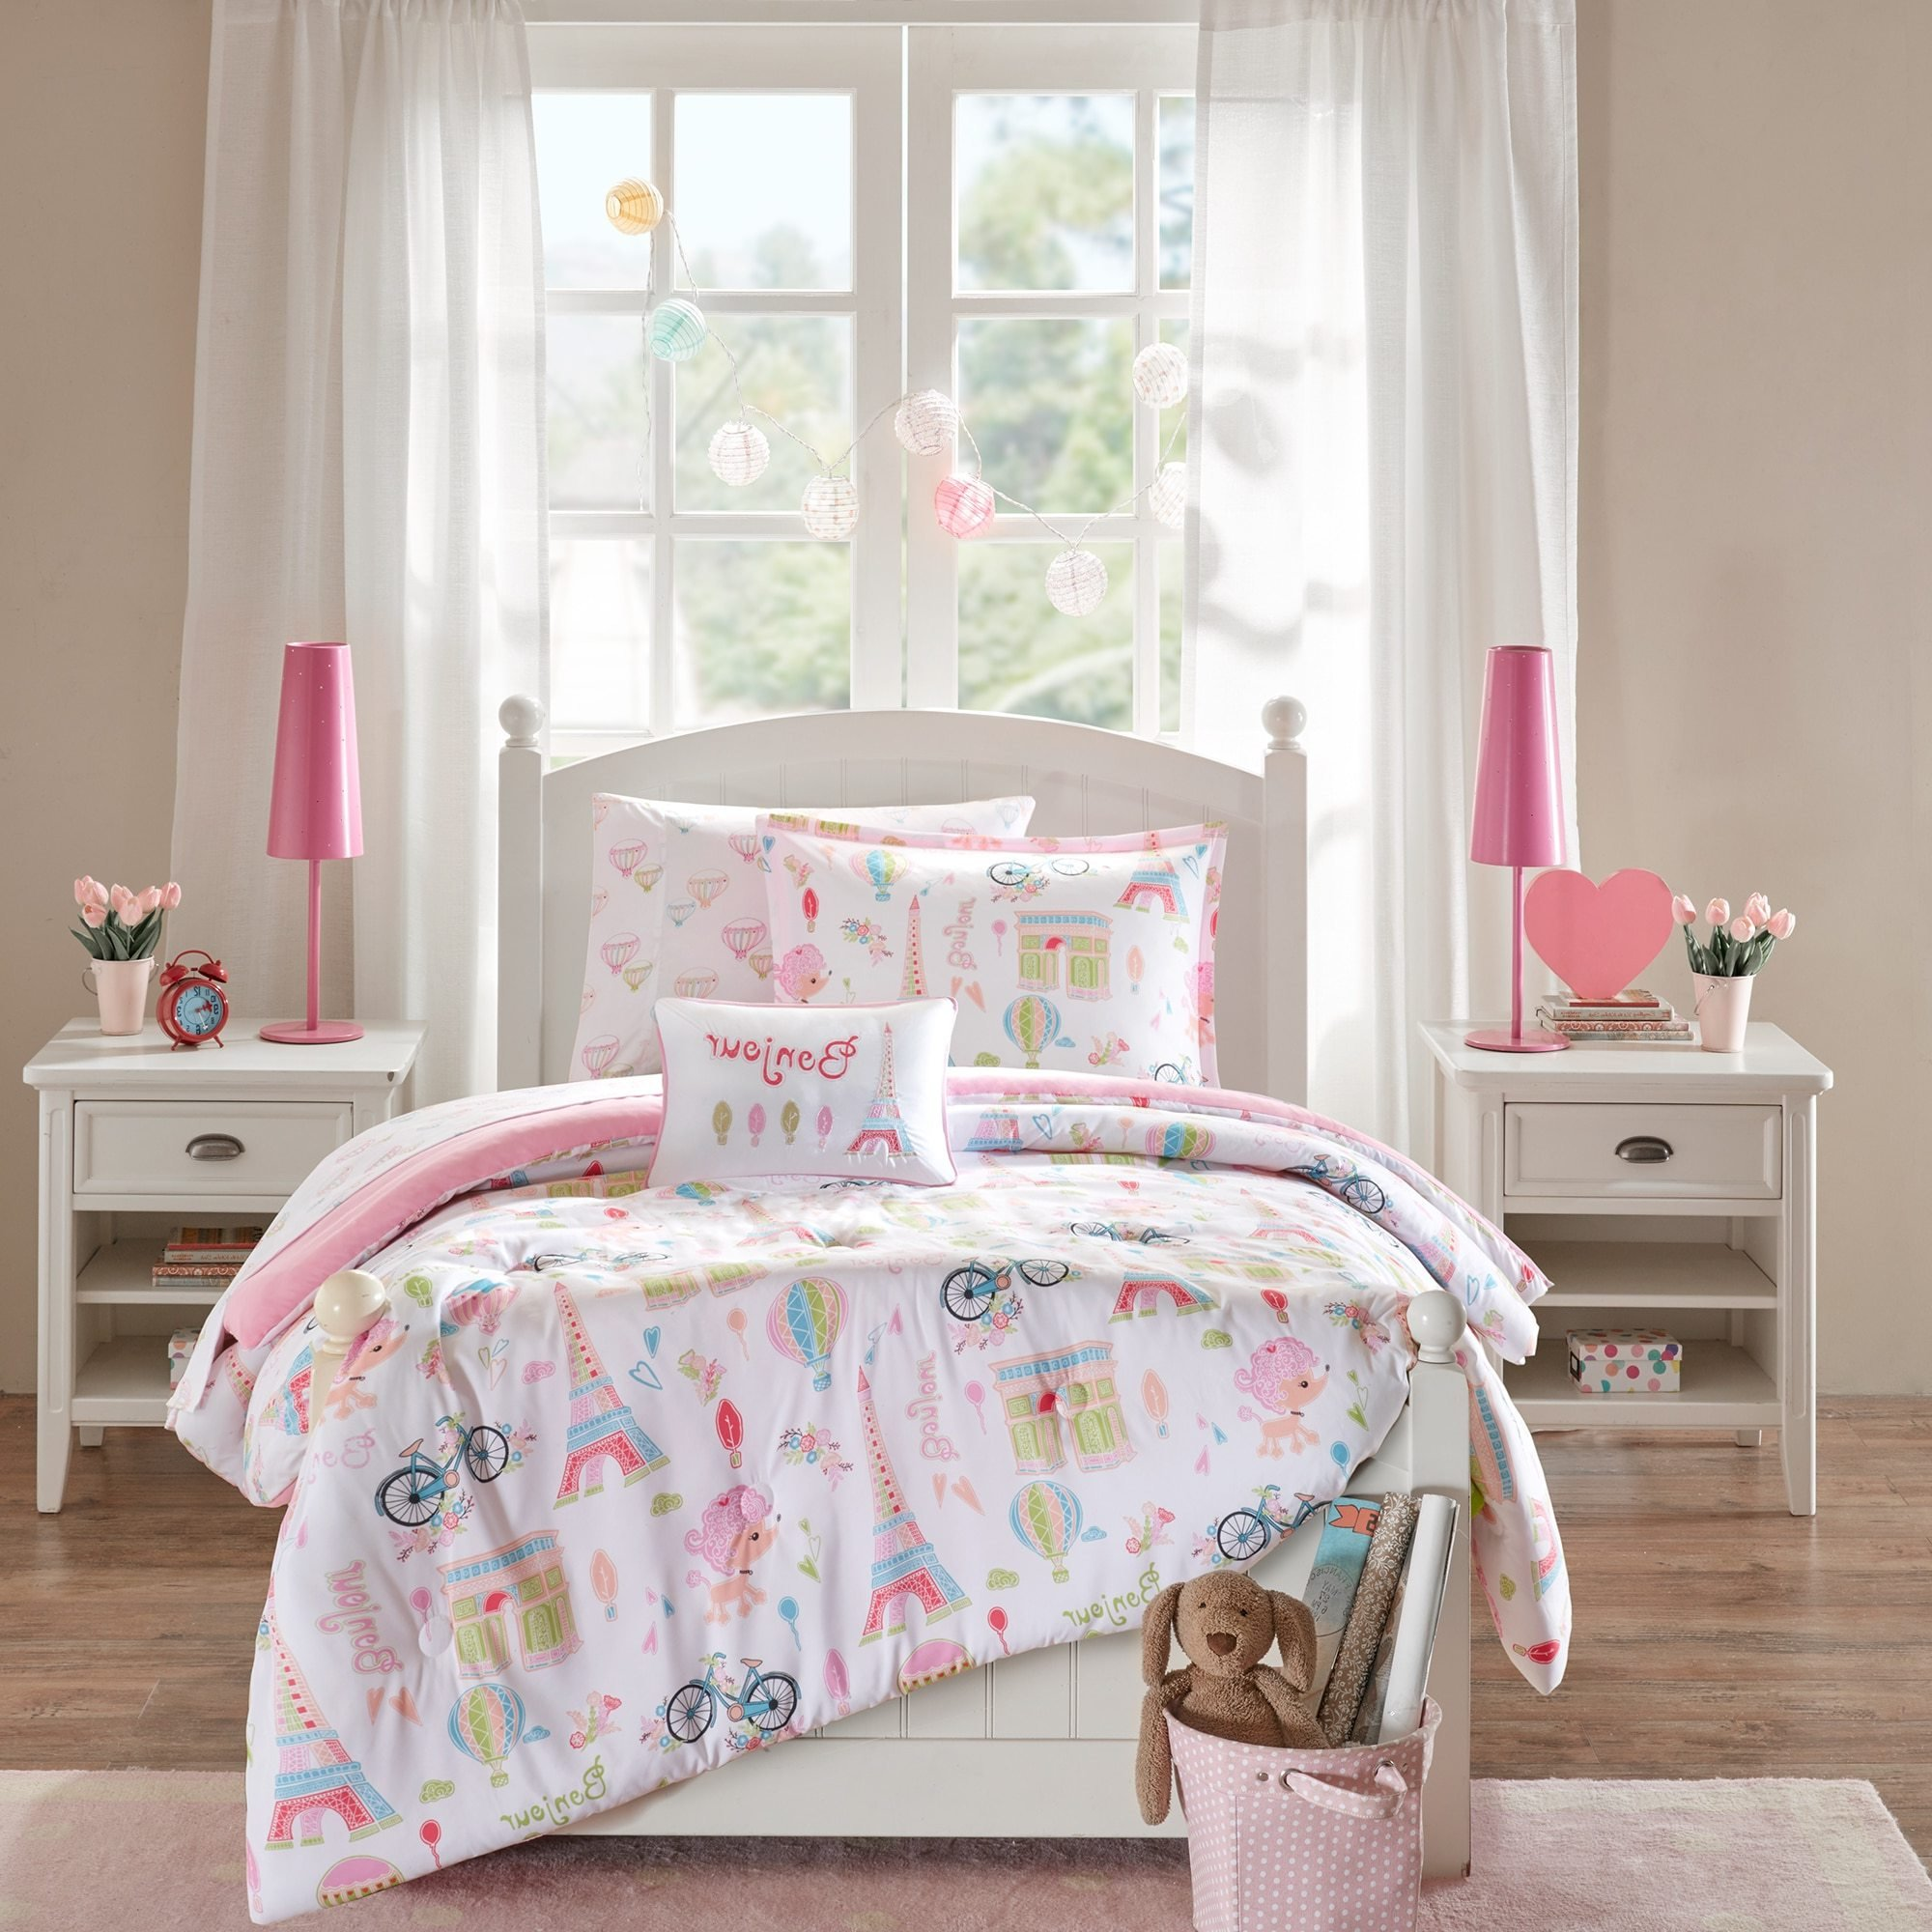 8 Piece Girls Pink White I Love Paris Comforter Full Set, Cute Girly All Over France Inspired Bedding, Fun Pretty Eiffel Tower Bicycle Bike Hot Air Balloon Poodle Dog Themed Pattern, Blue Green Yellow